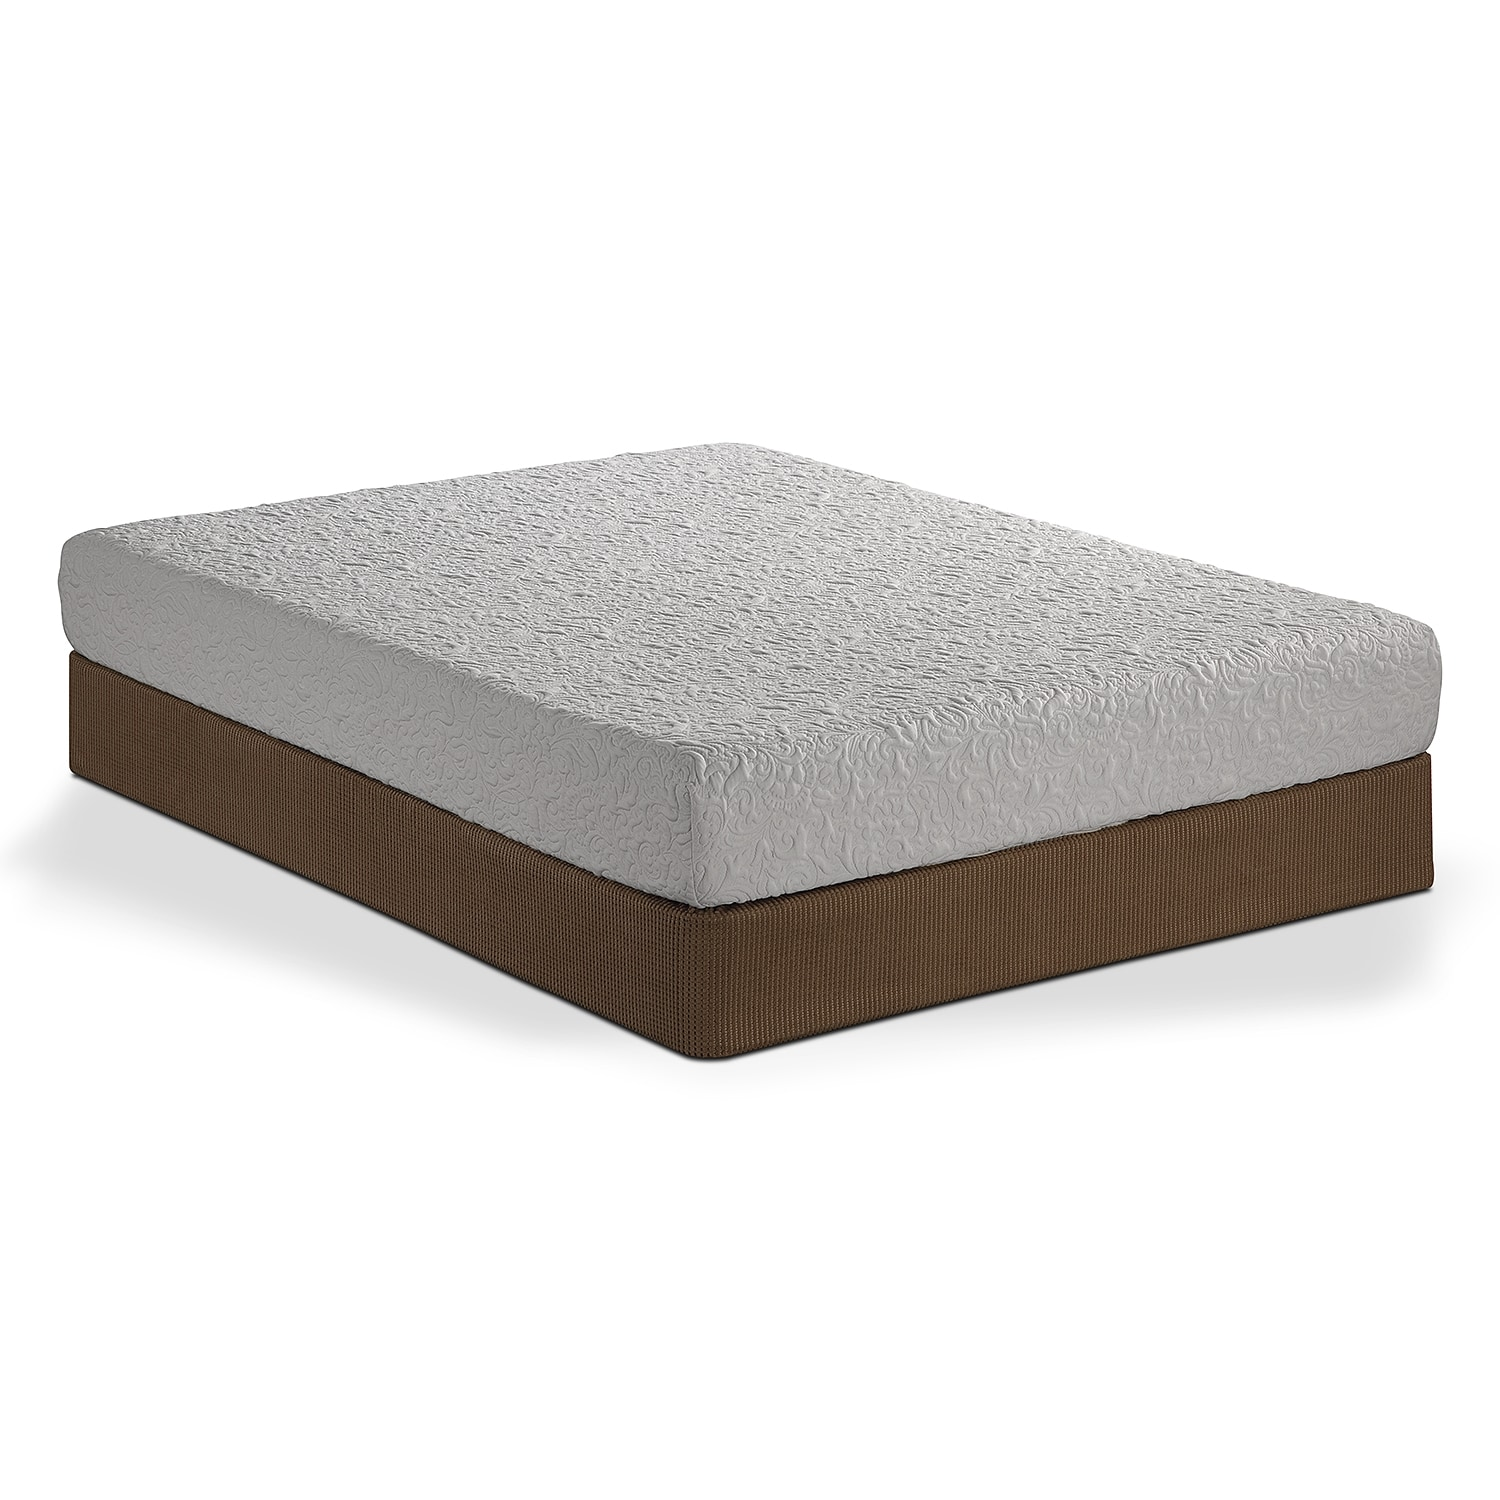 And bedding icomfort insight queen mattresssplit foundation set bed mattress sale Queen mattress sale